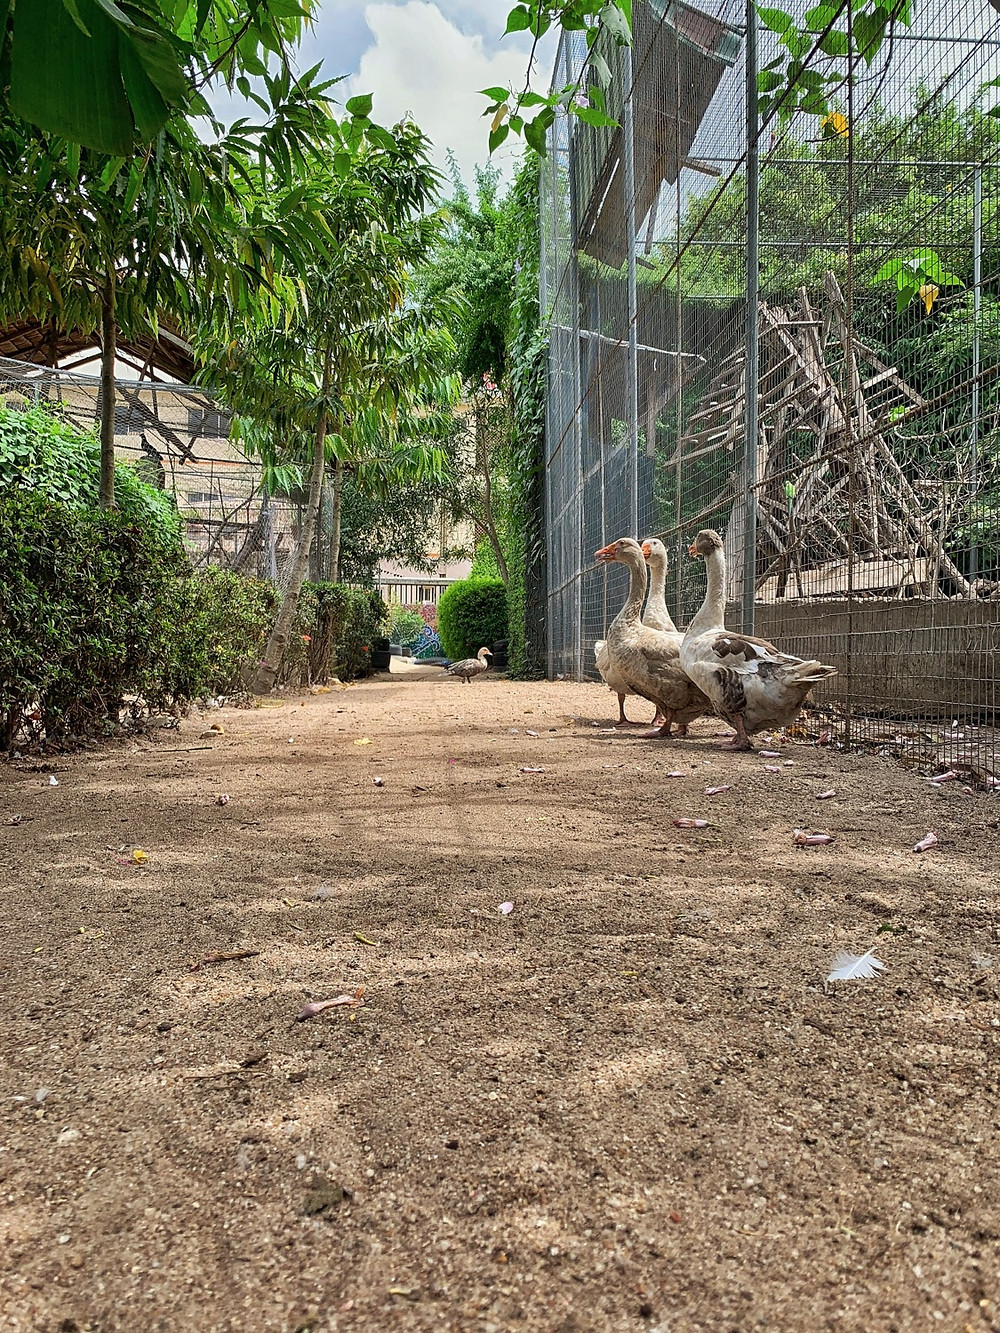 Geese at Greenfingers Wildlife Conservation